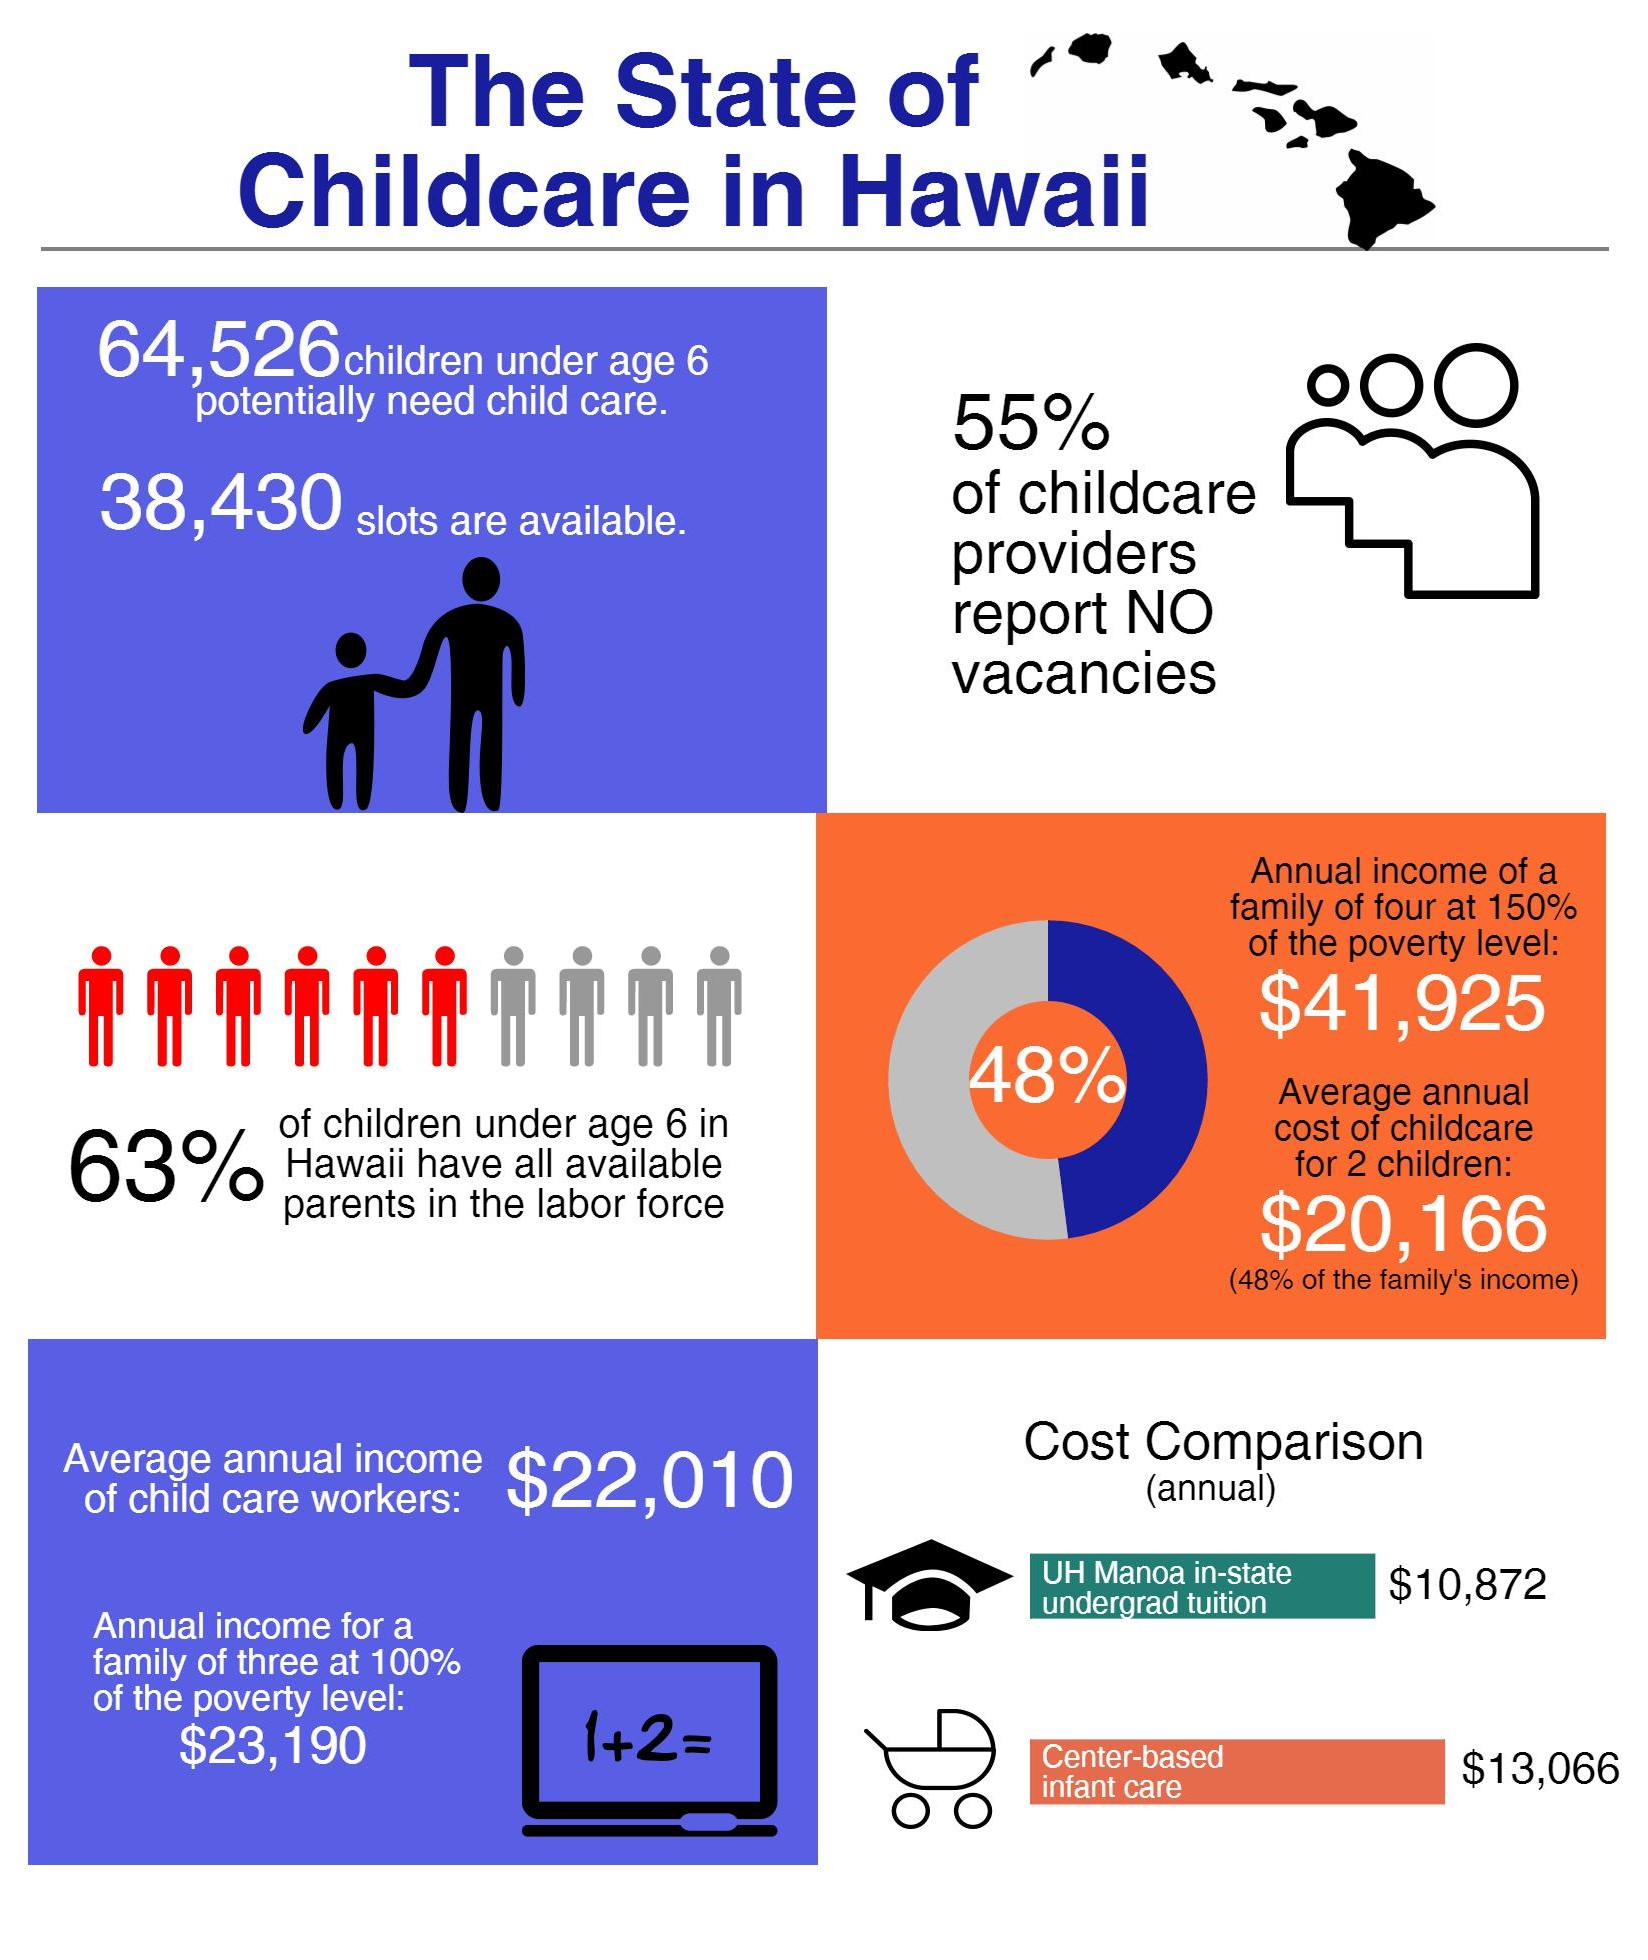 The_State_of_Childcare_in_Hawaii_(2016).jpeg